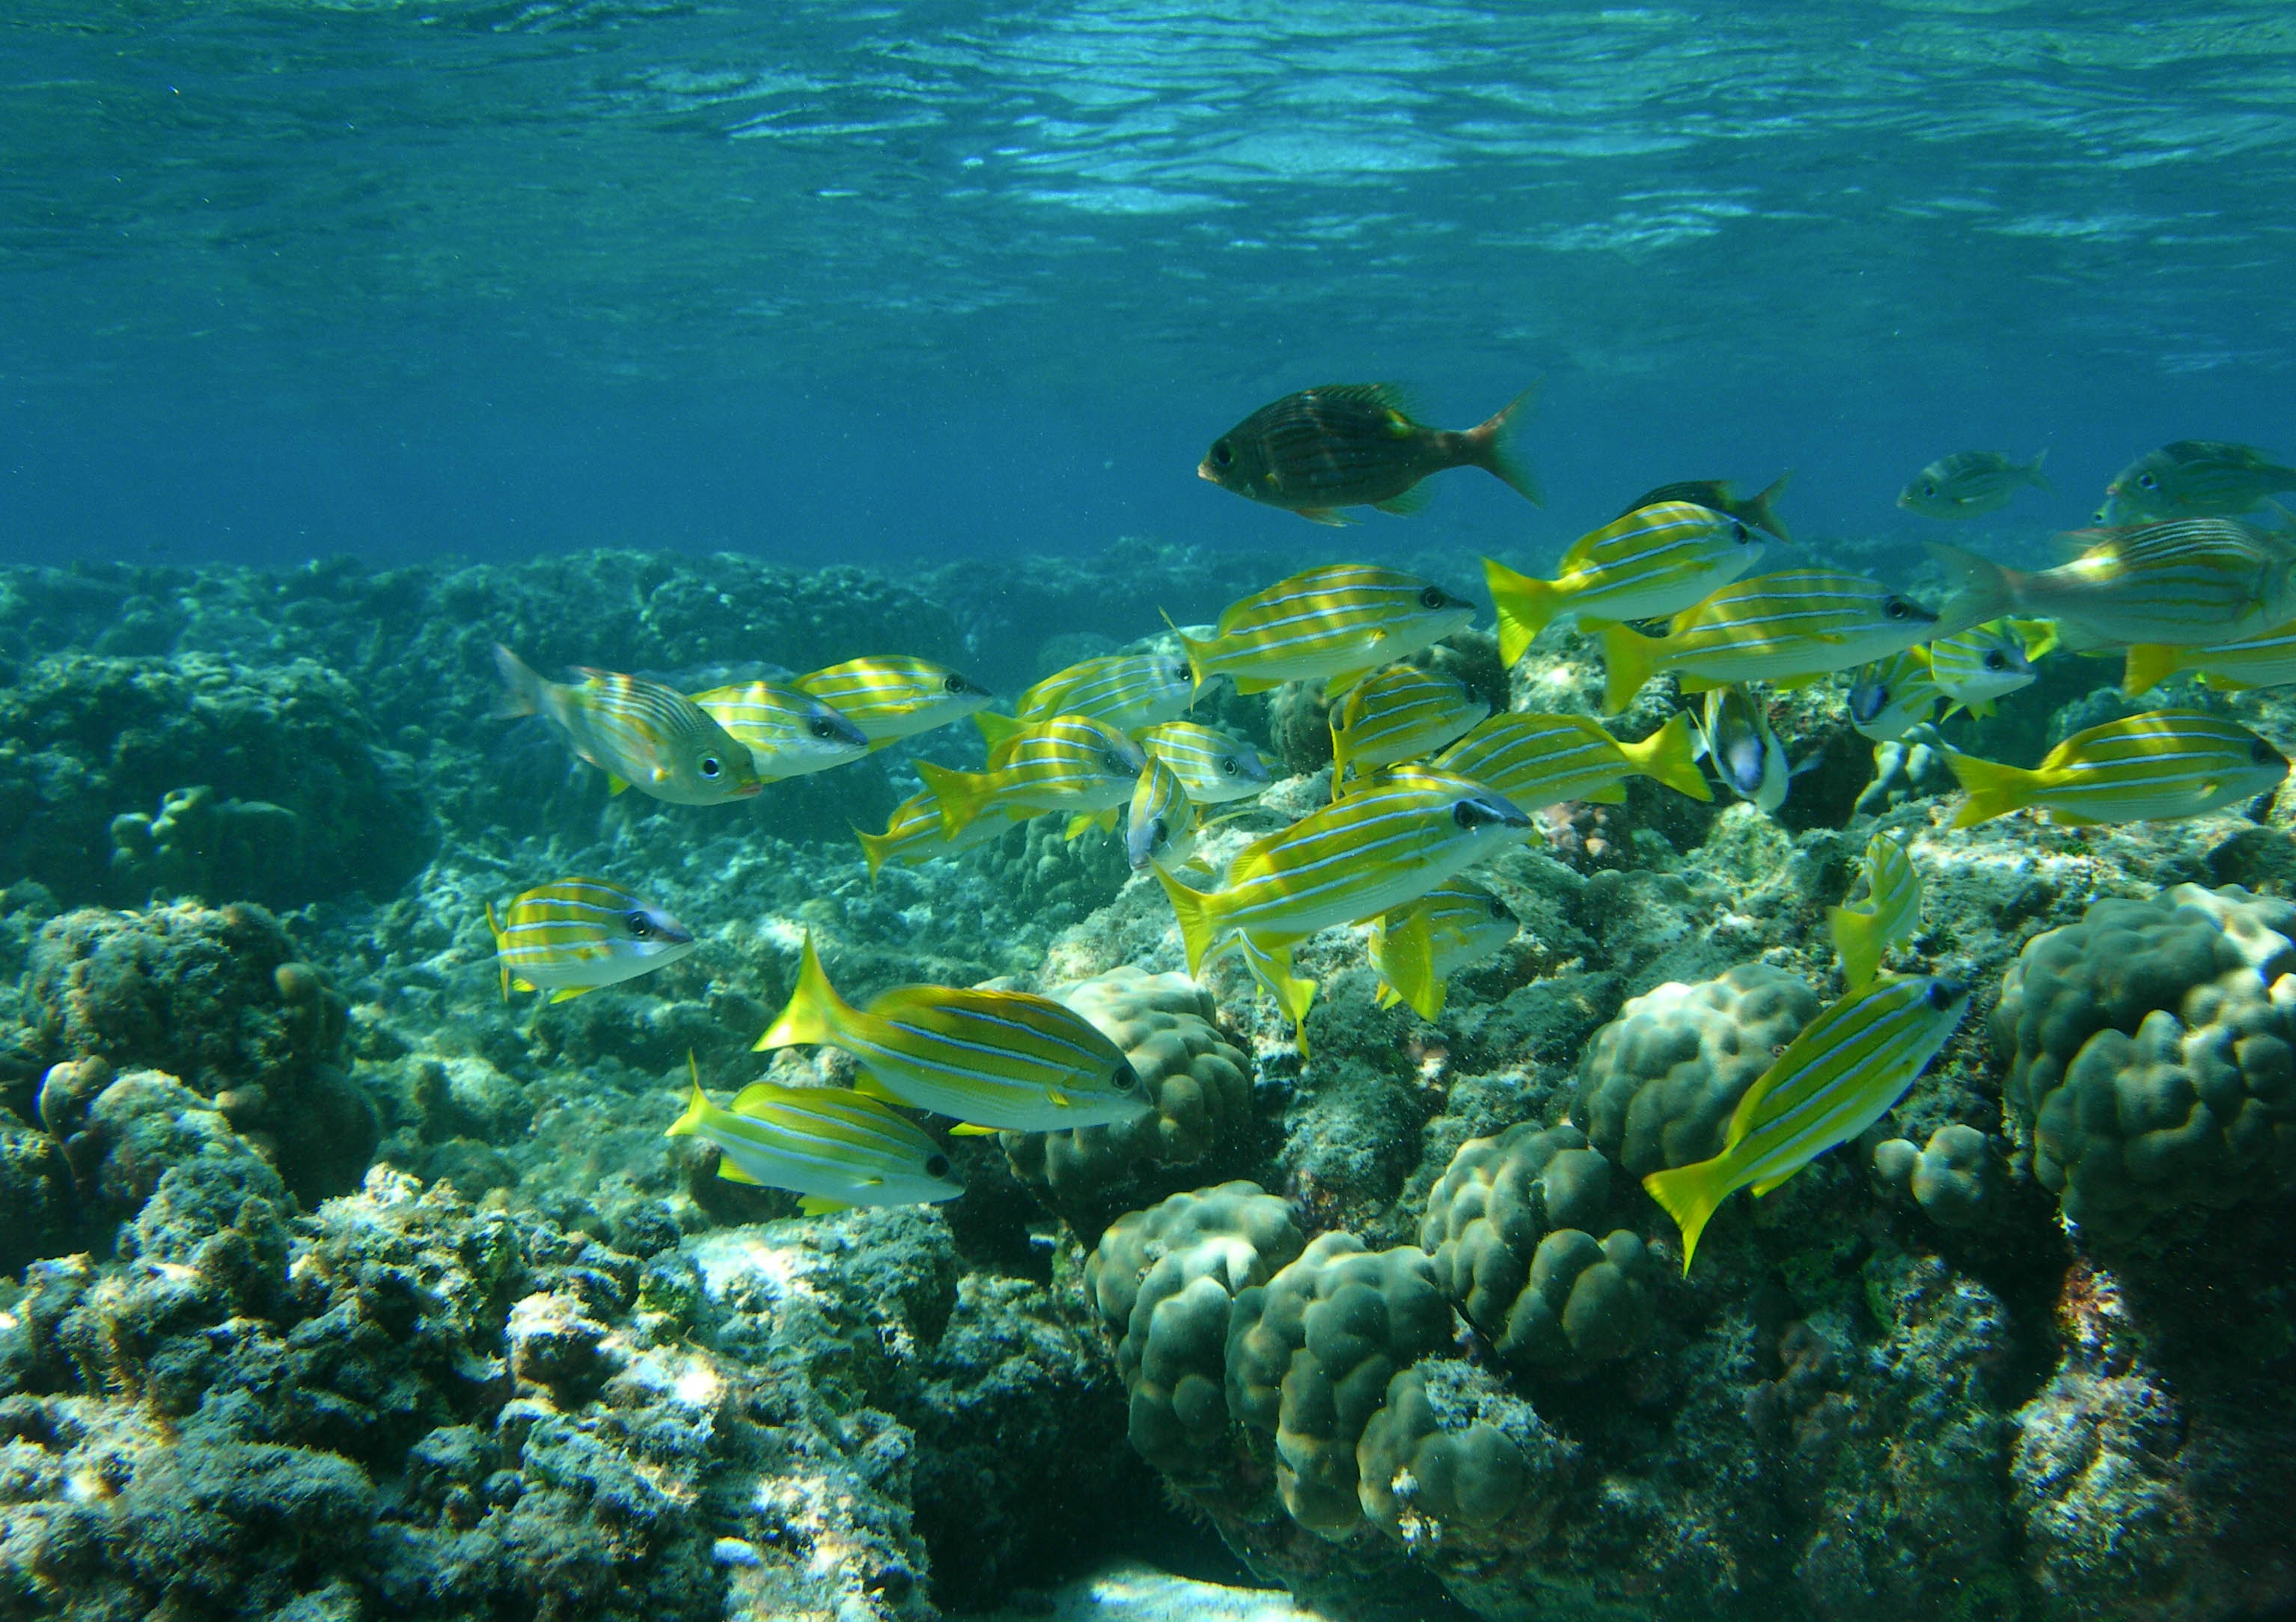 School of yellow stripe snapper Lutjanus kasmira in the waters of Agatti Island, Lakshadweep